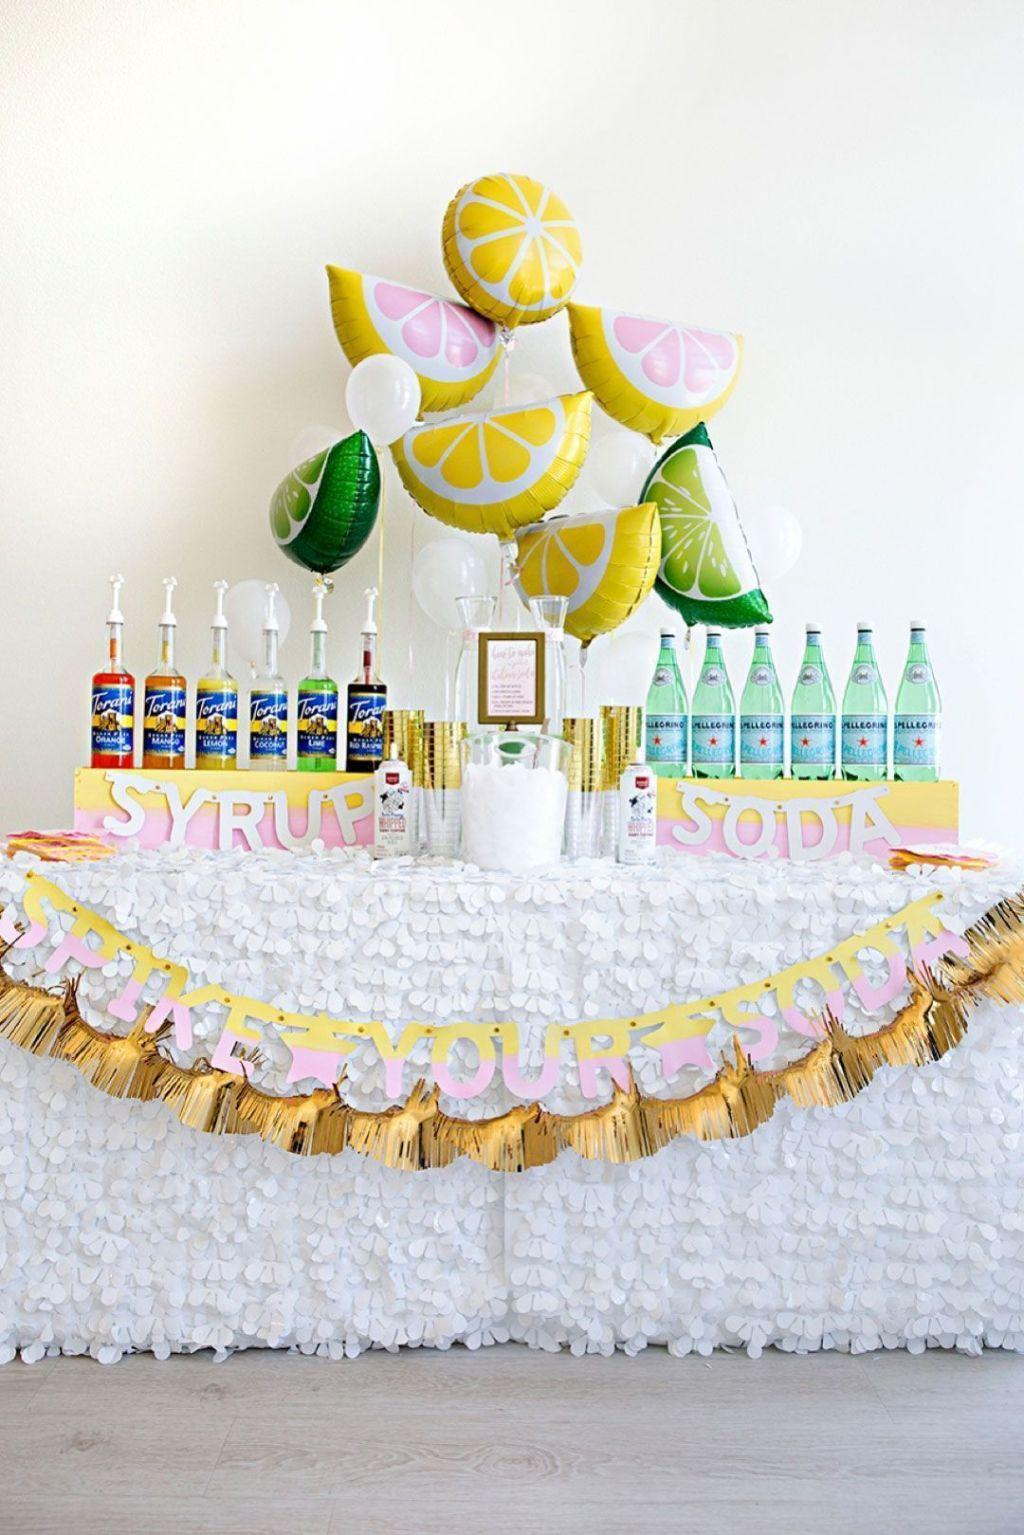 Decoration with balloons: 85 inspirations to decorate 13